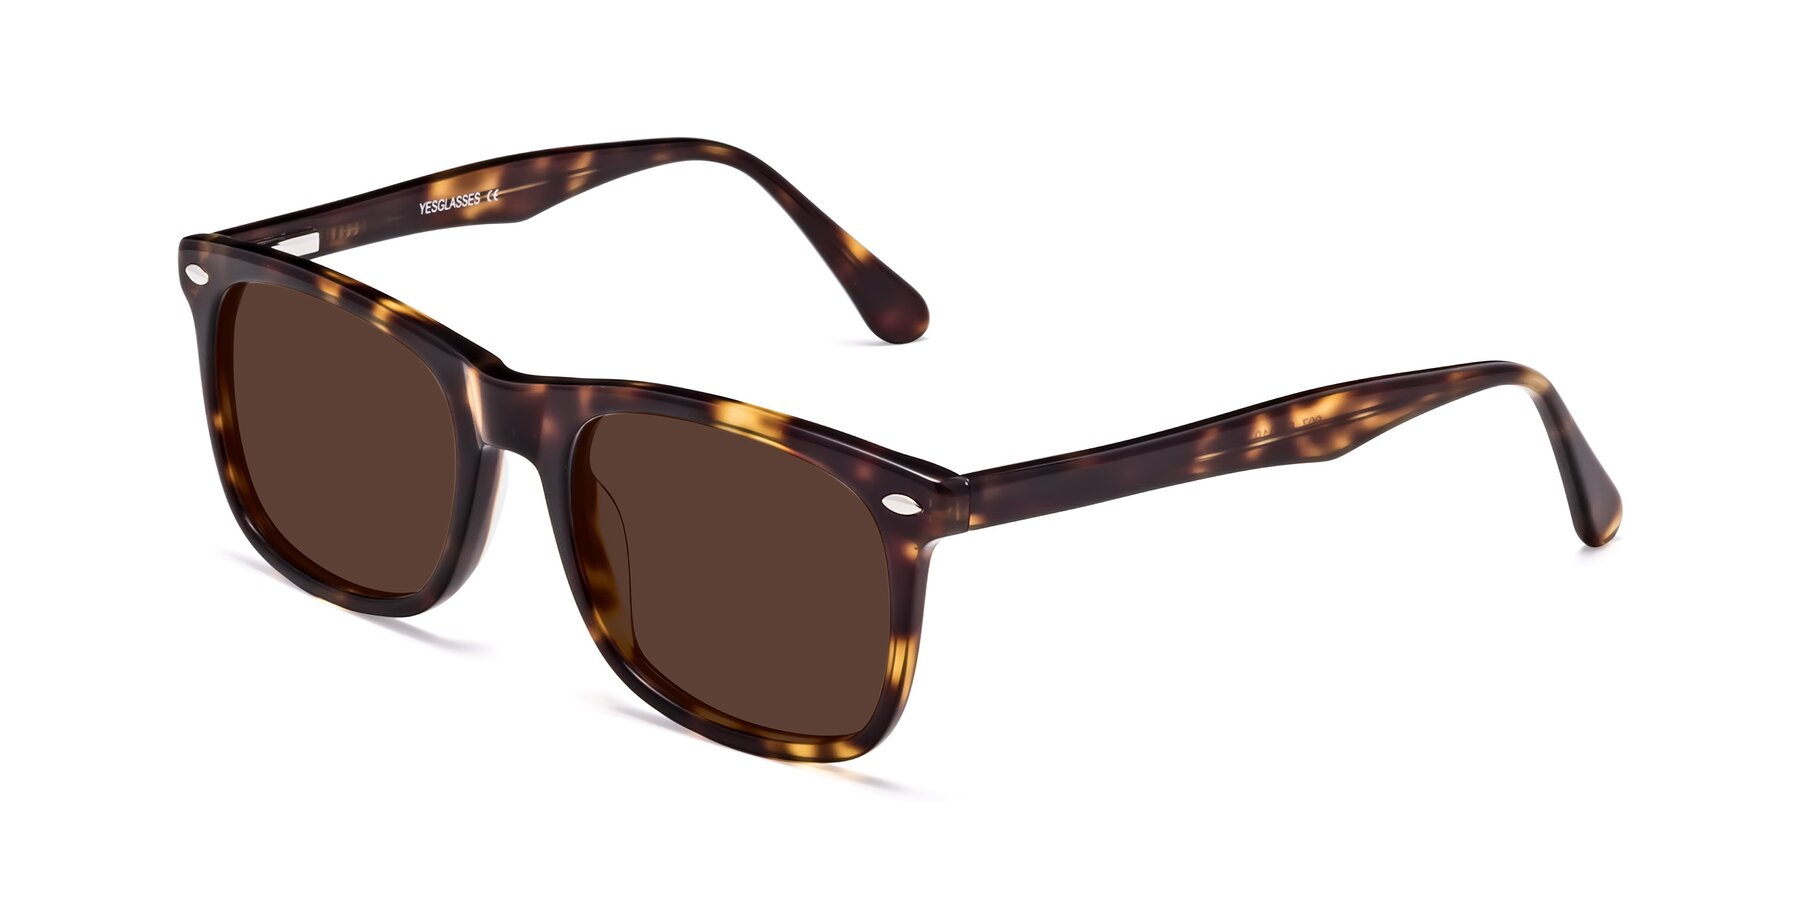 Angle of 007 in Yellow Tortoise with Brown Tinted Lenses